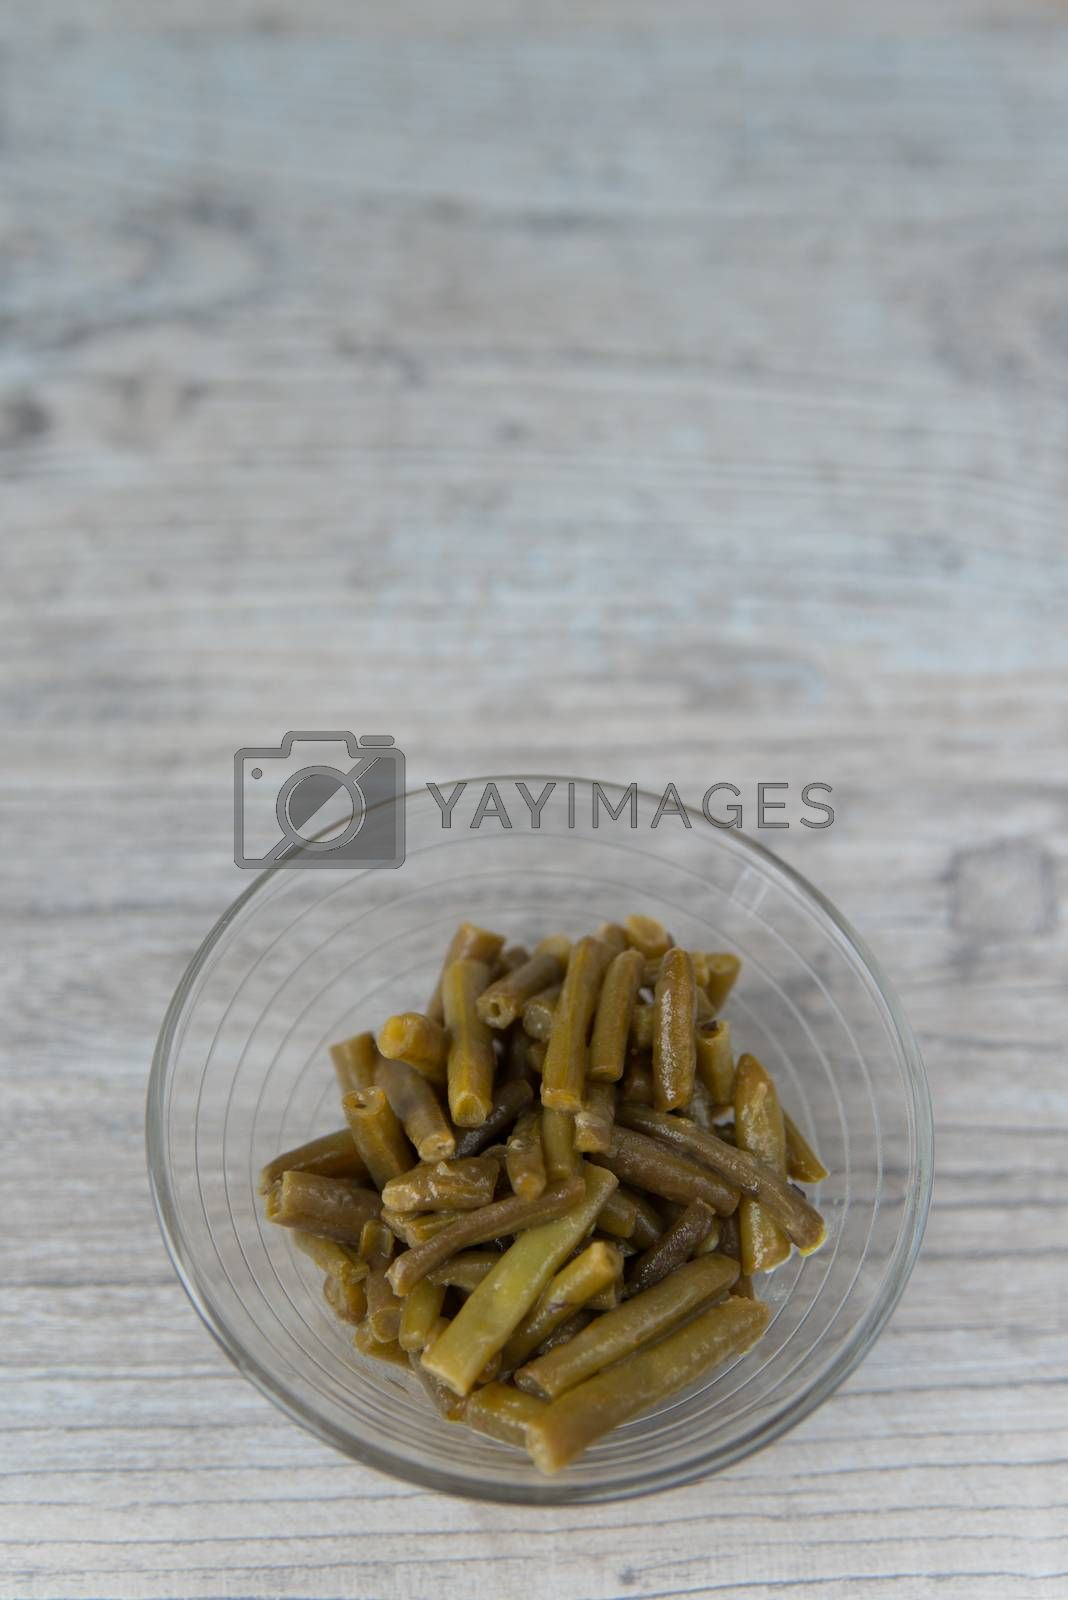 Royalty free image of Plate of the green beans by Linaga